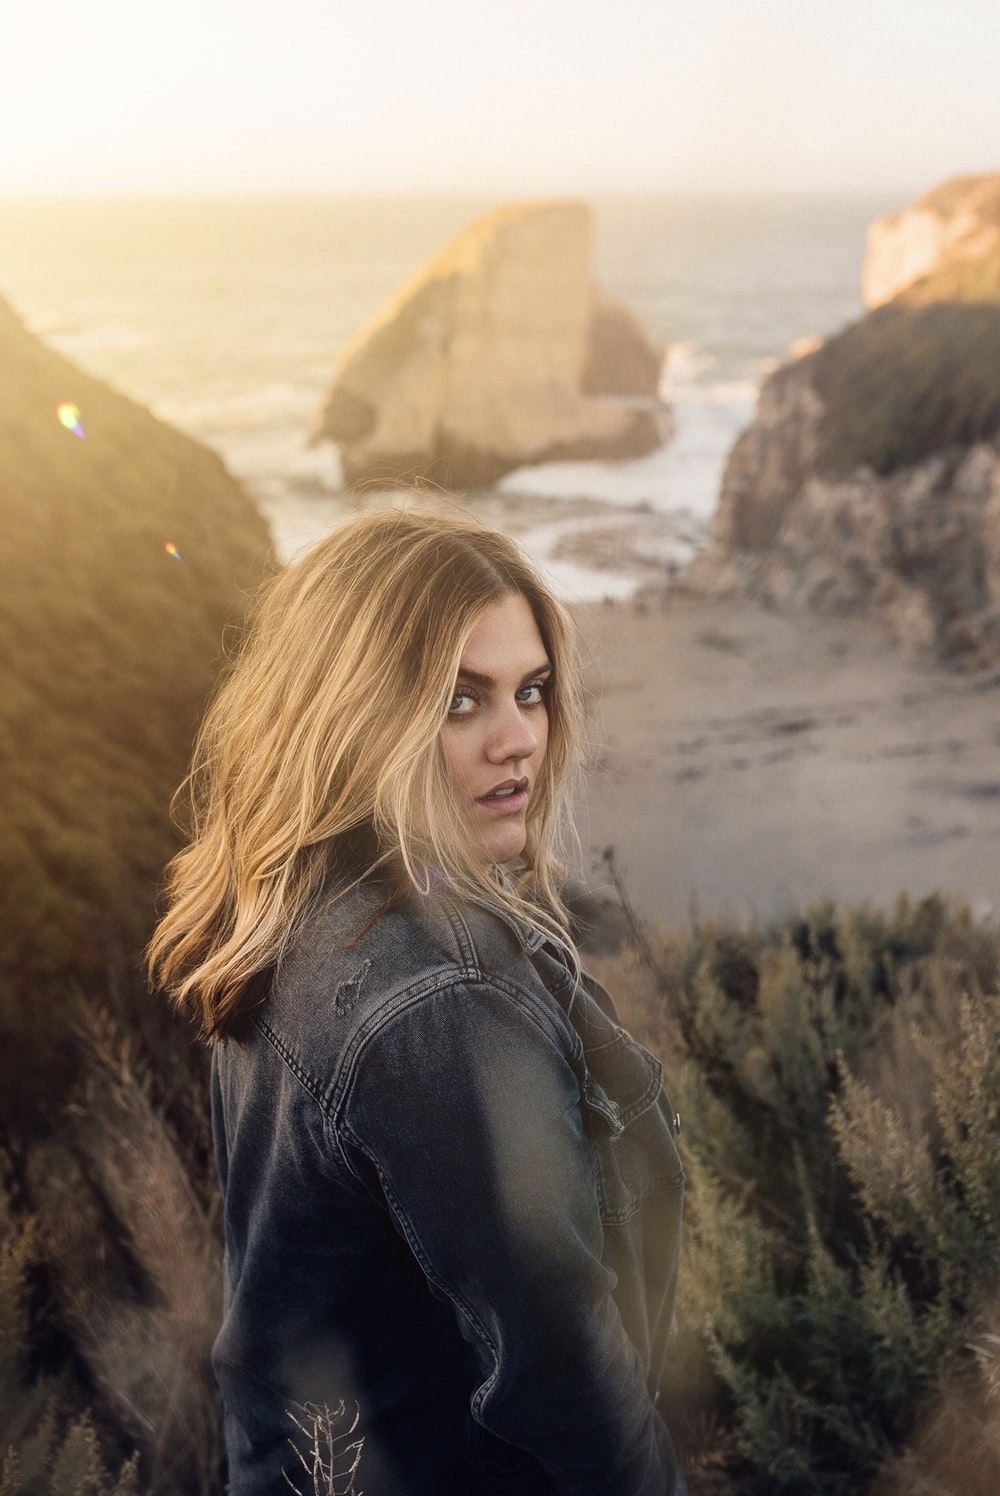 woman in black leather jacket standing near brown rock formation during daytime